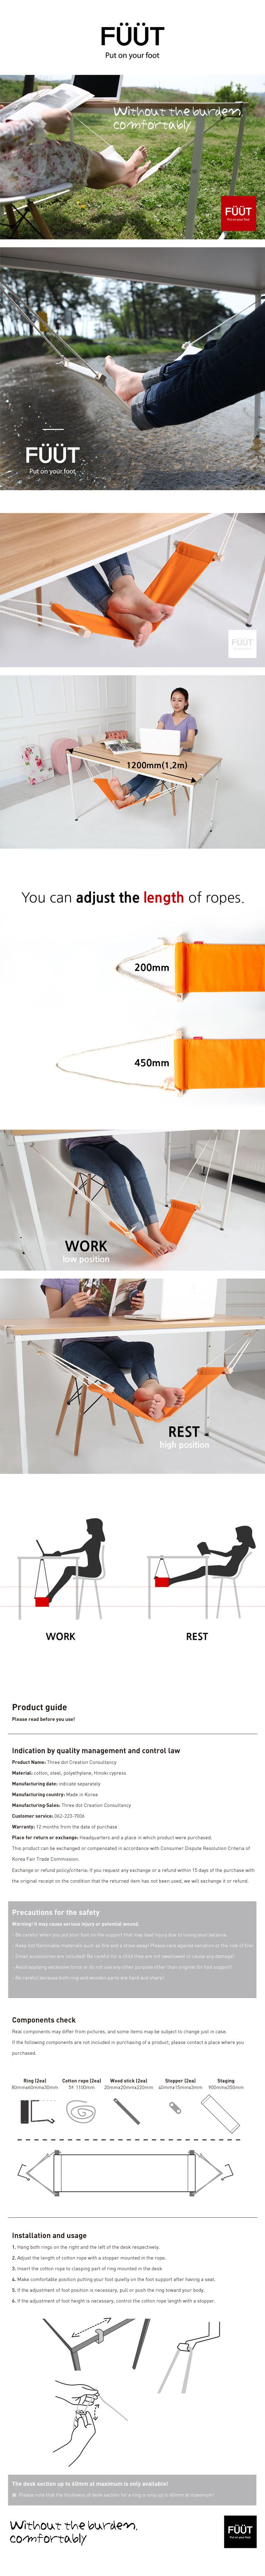 The Fuut by Connect Design is a foot hammock for your feet. I am guilty of propping up my feet on just about anything, so I would love to have this under my desk. $30 gets you one.: